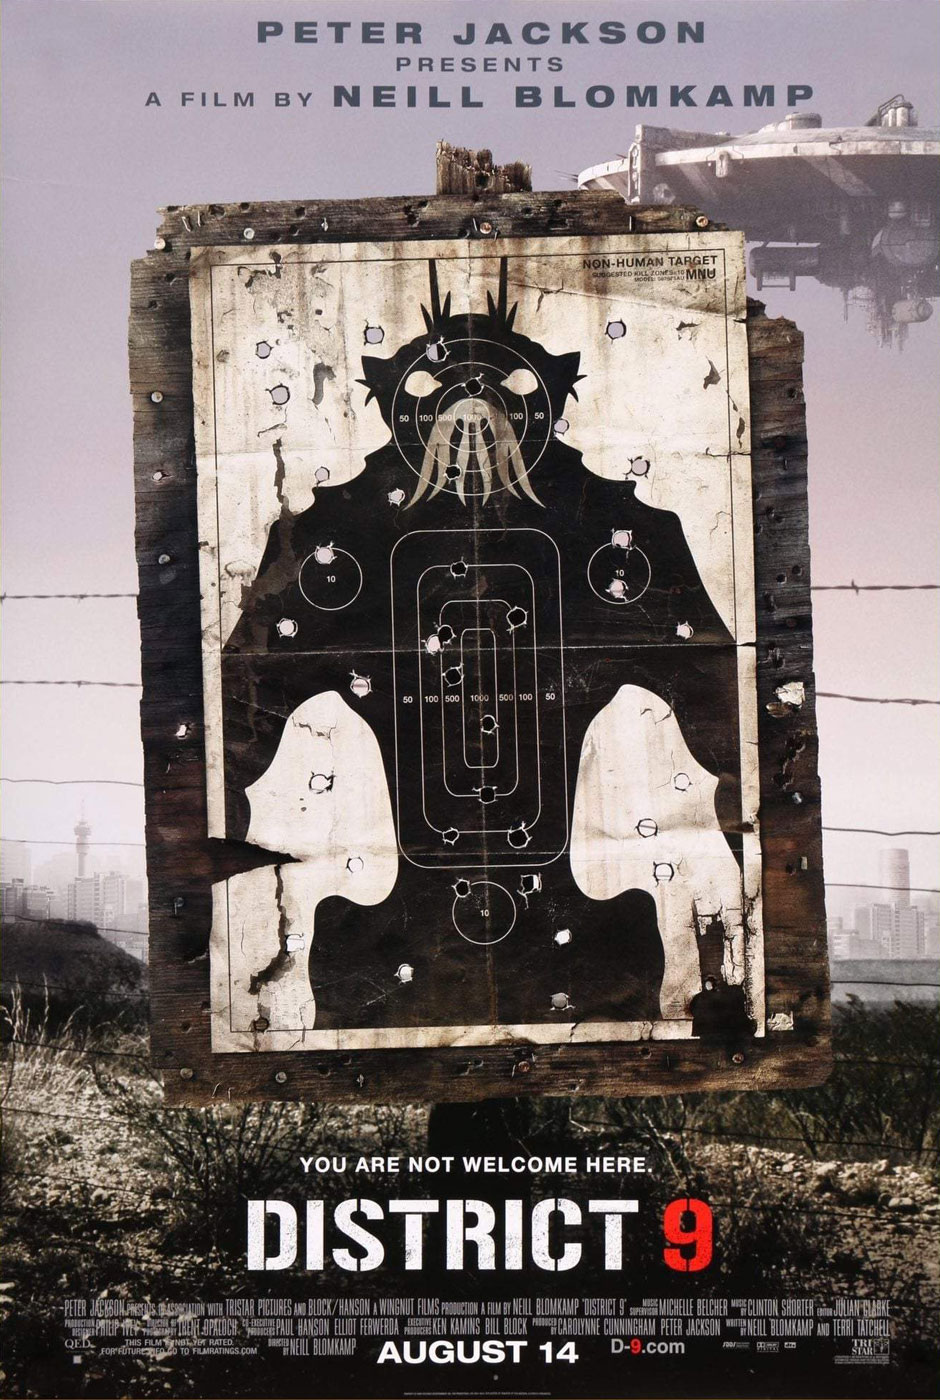 District 9 - Neill Blomkamp (2009)